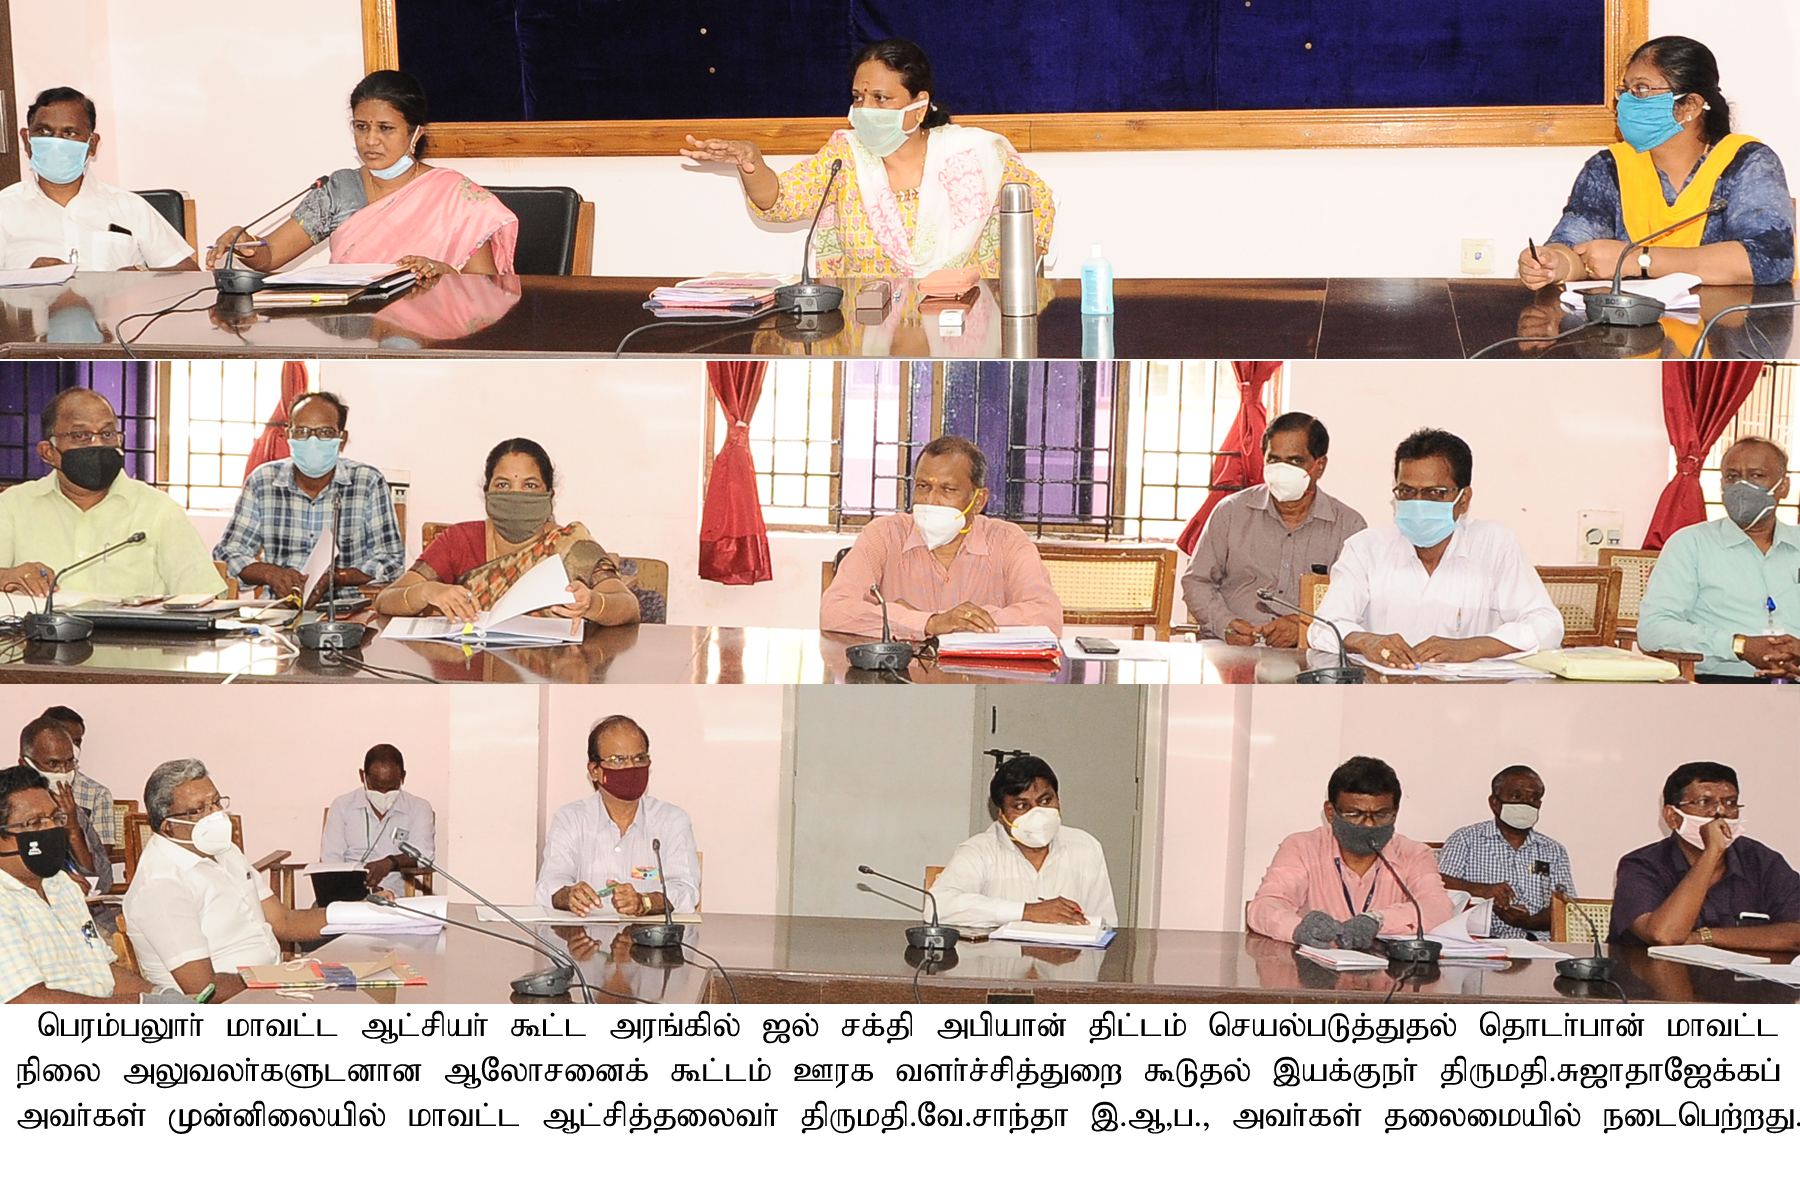 Meeting and Discussion on the Jal Sakthi Abhiyan Scheme - 16.07.2020